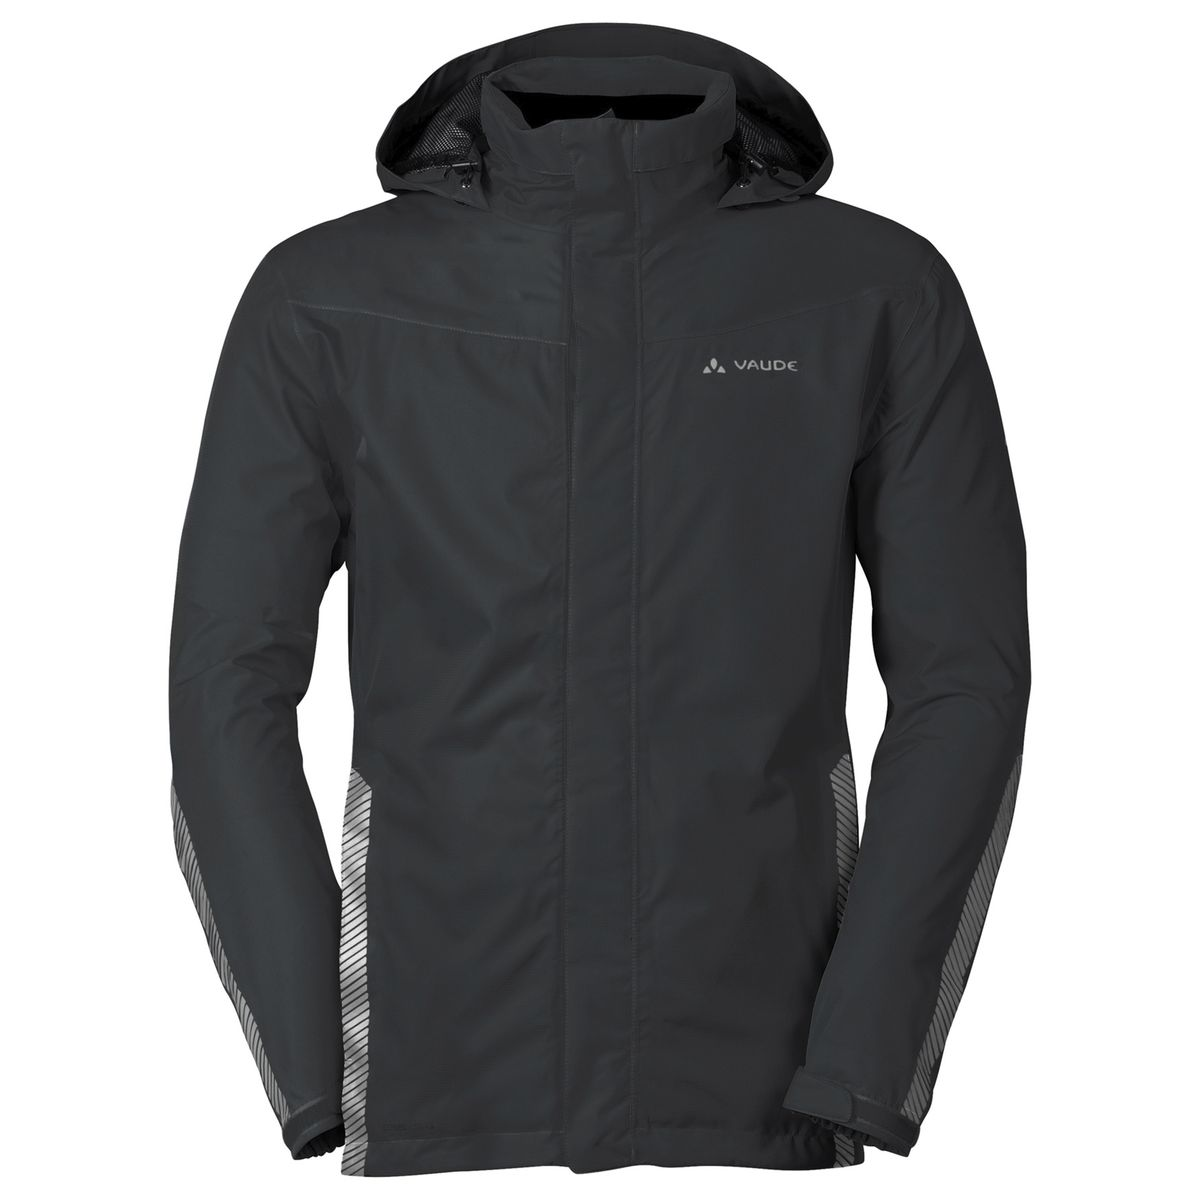 LUMINUM waterproof jacket